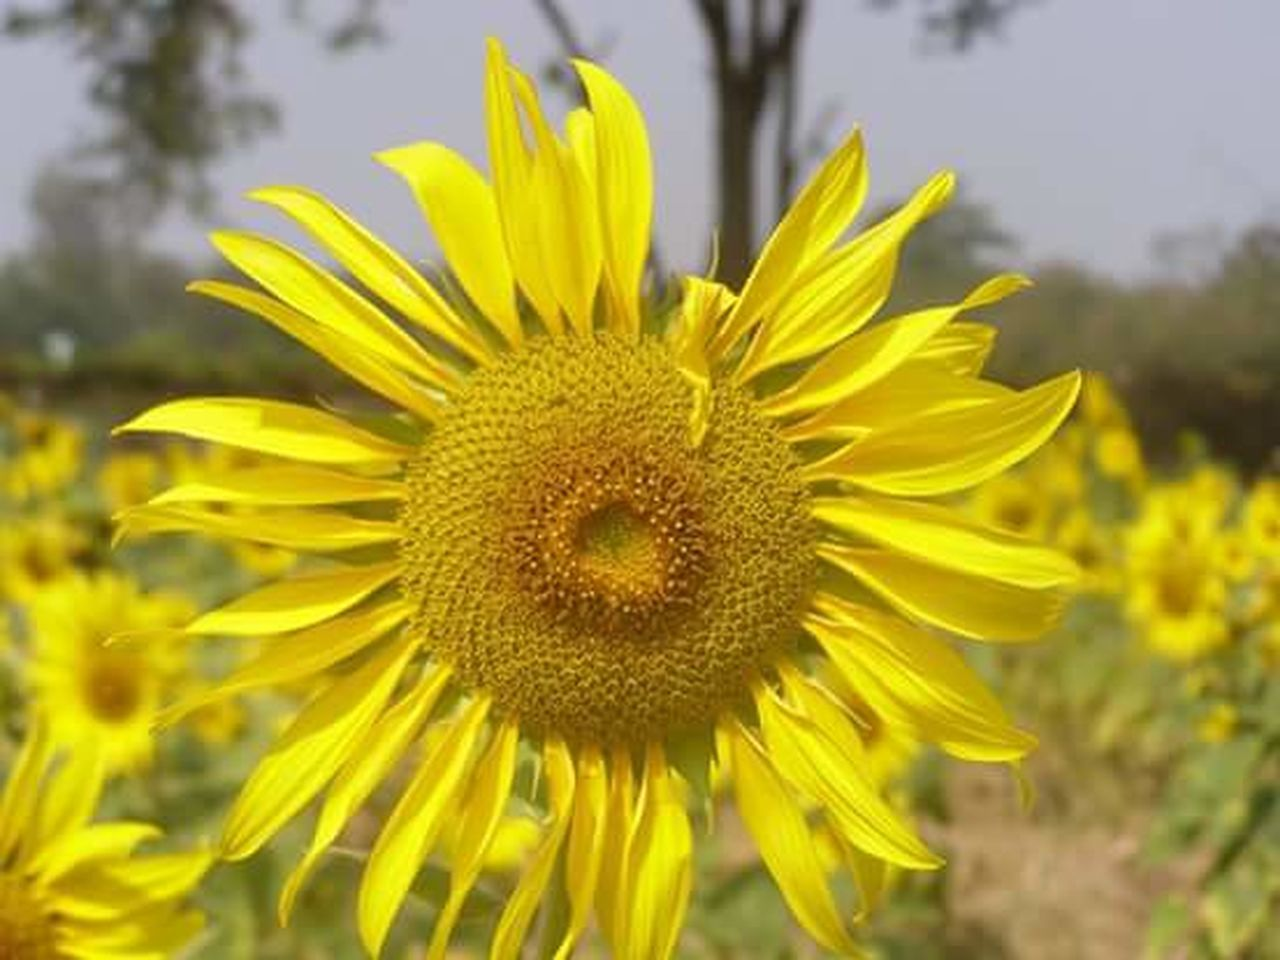 flower, yellow, petal, nature, fragility, flower head, outdoors, plant, freshness, growth, close-up, beauty in nature, day, focus on foreground, summer, springtime, no people